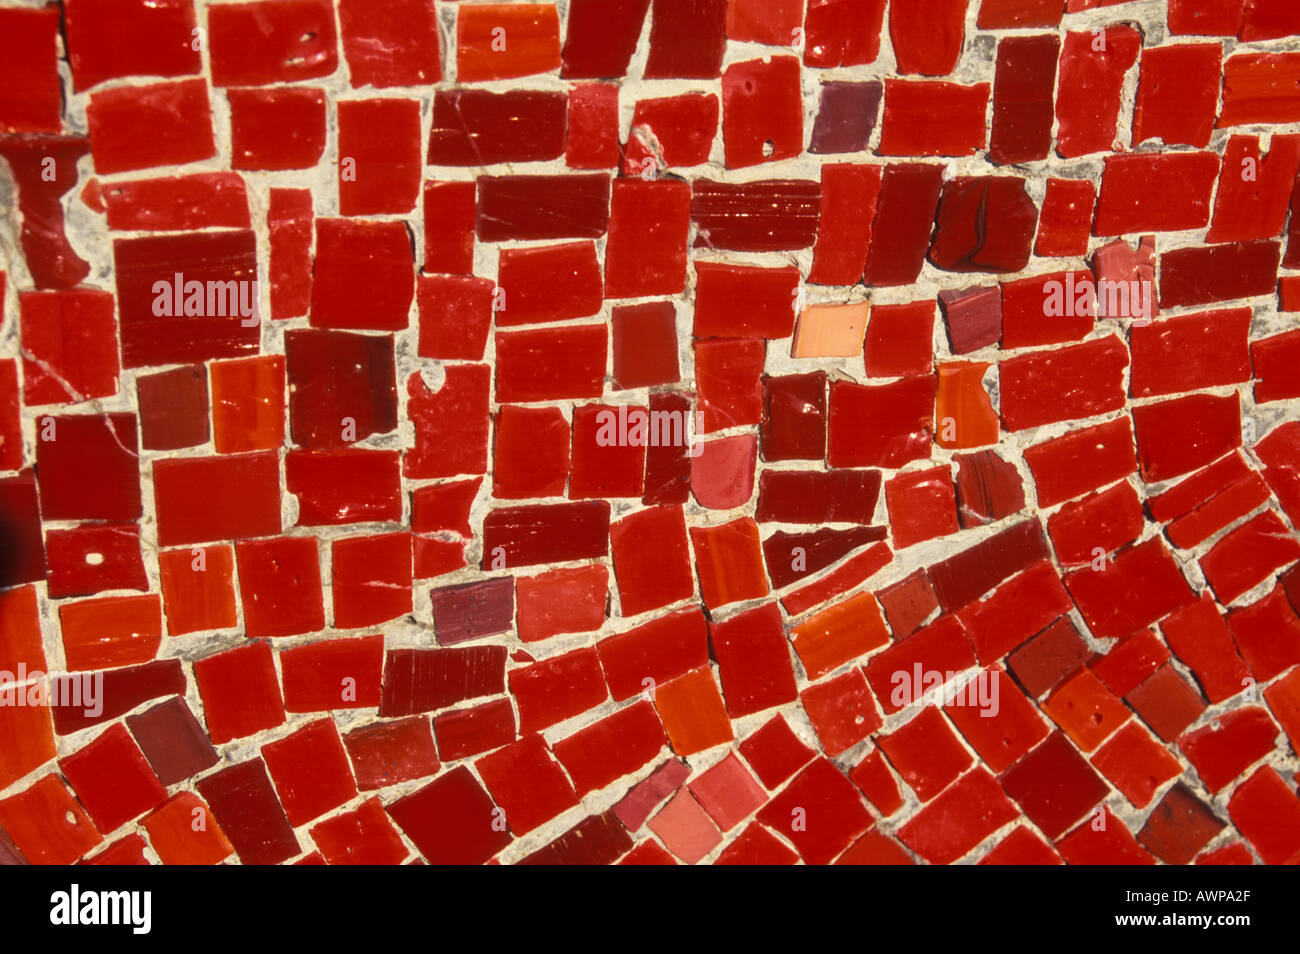 A shot of red mosaic tiles. - Stock Image